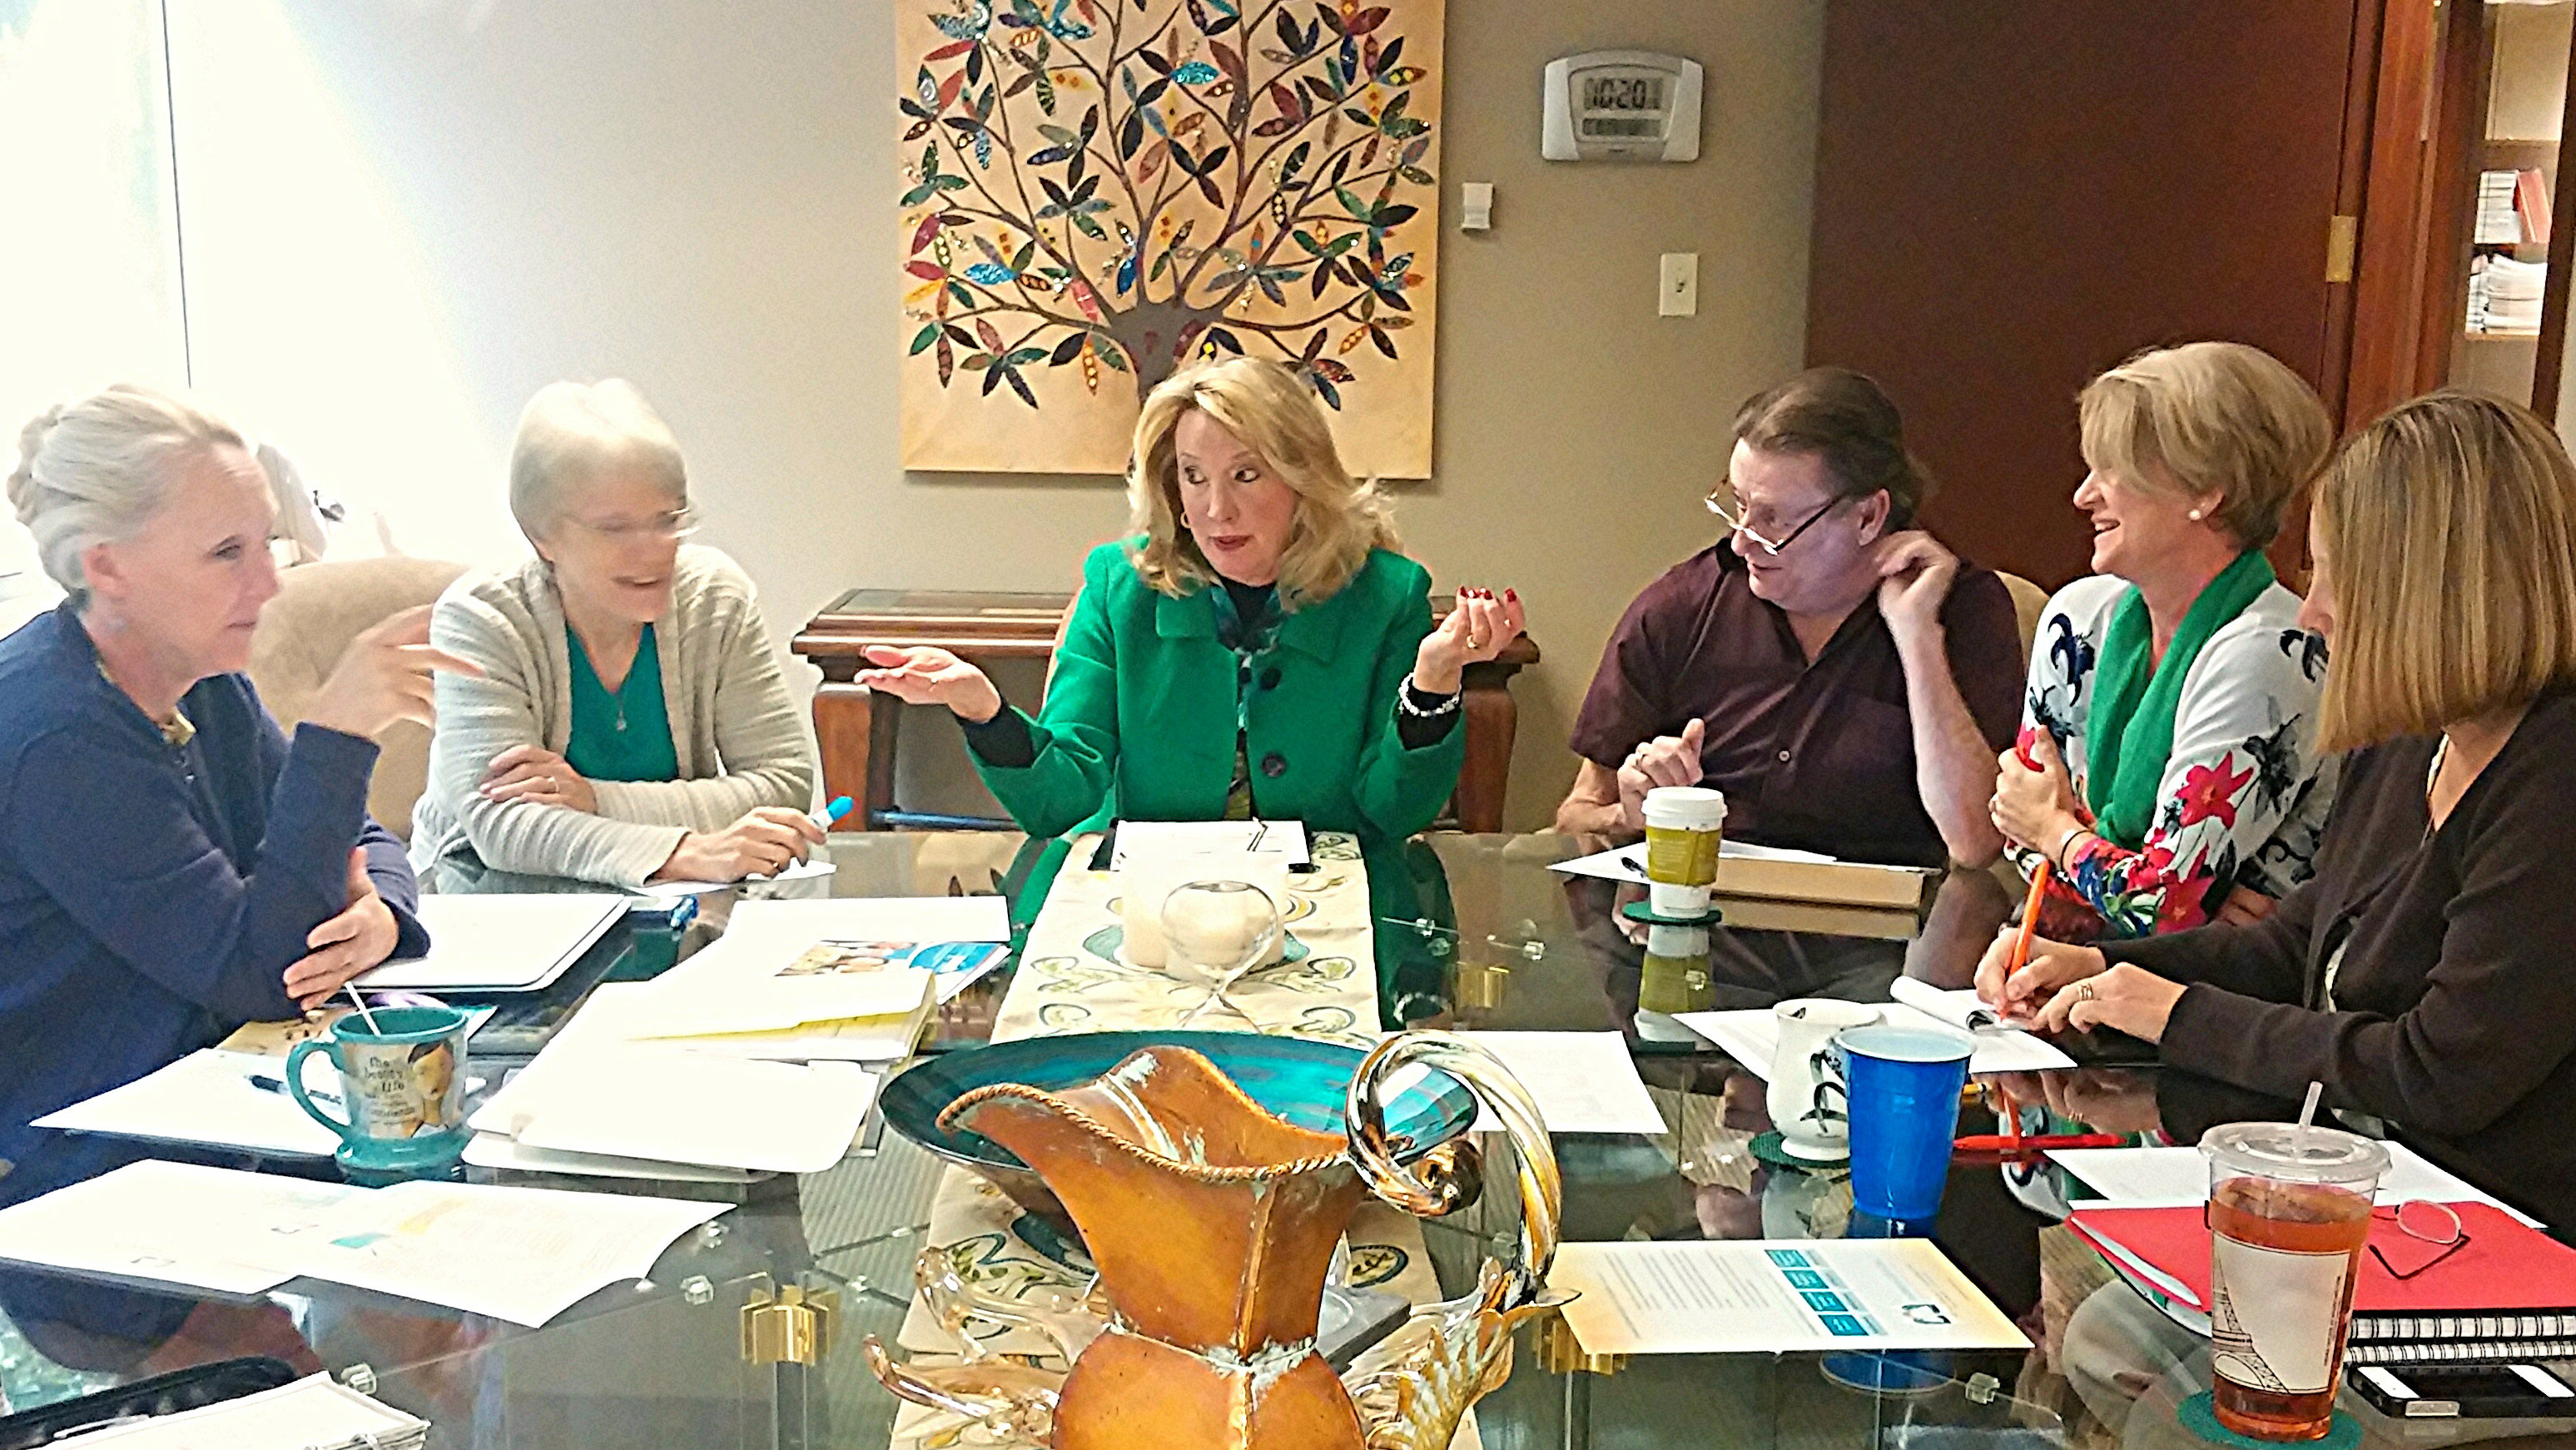 """<p>The CEO of the Institute of Life and Care in Greenwood Village<span style=""""line-height: 1.66667em;"""">Nancy Markham Bugbee (center)</span><span style=""""line-height: 1.66667em;"""">meets with other faculty at the institute.</span></p>"""